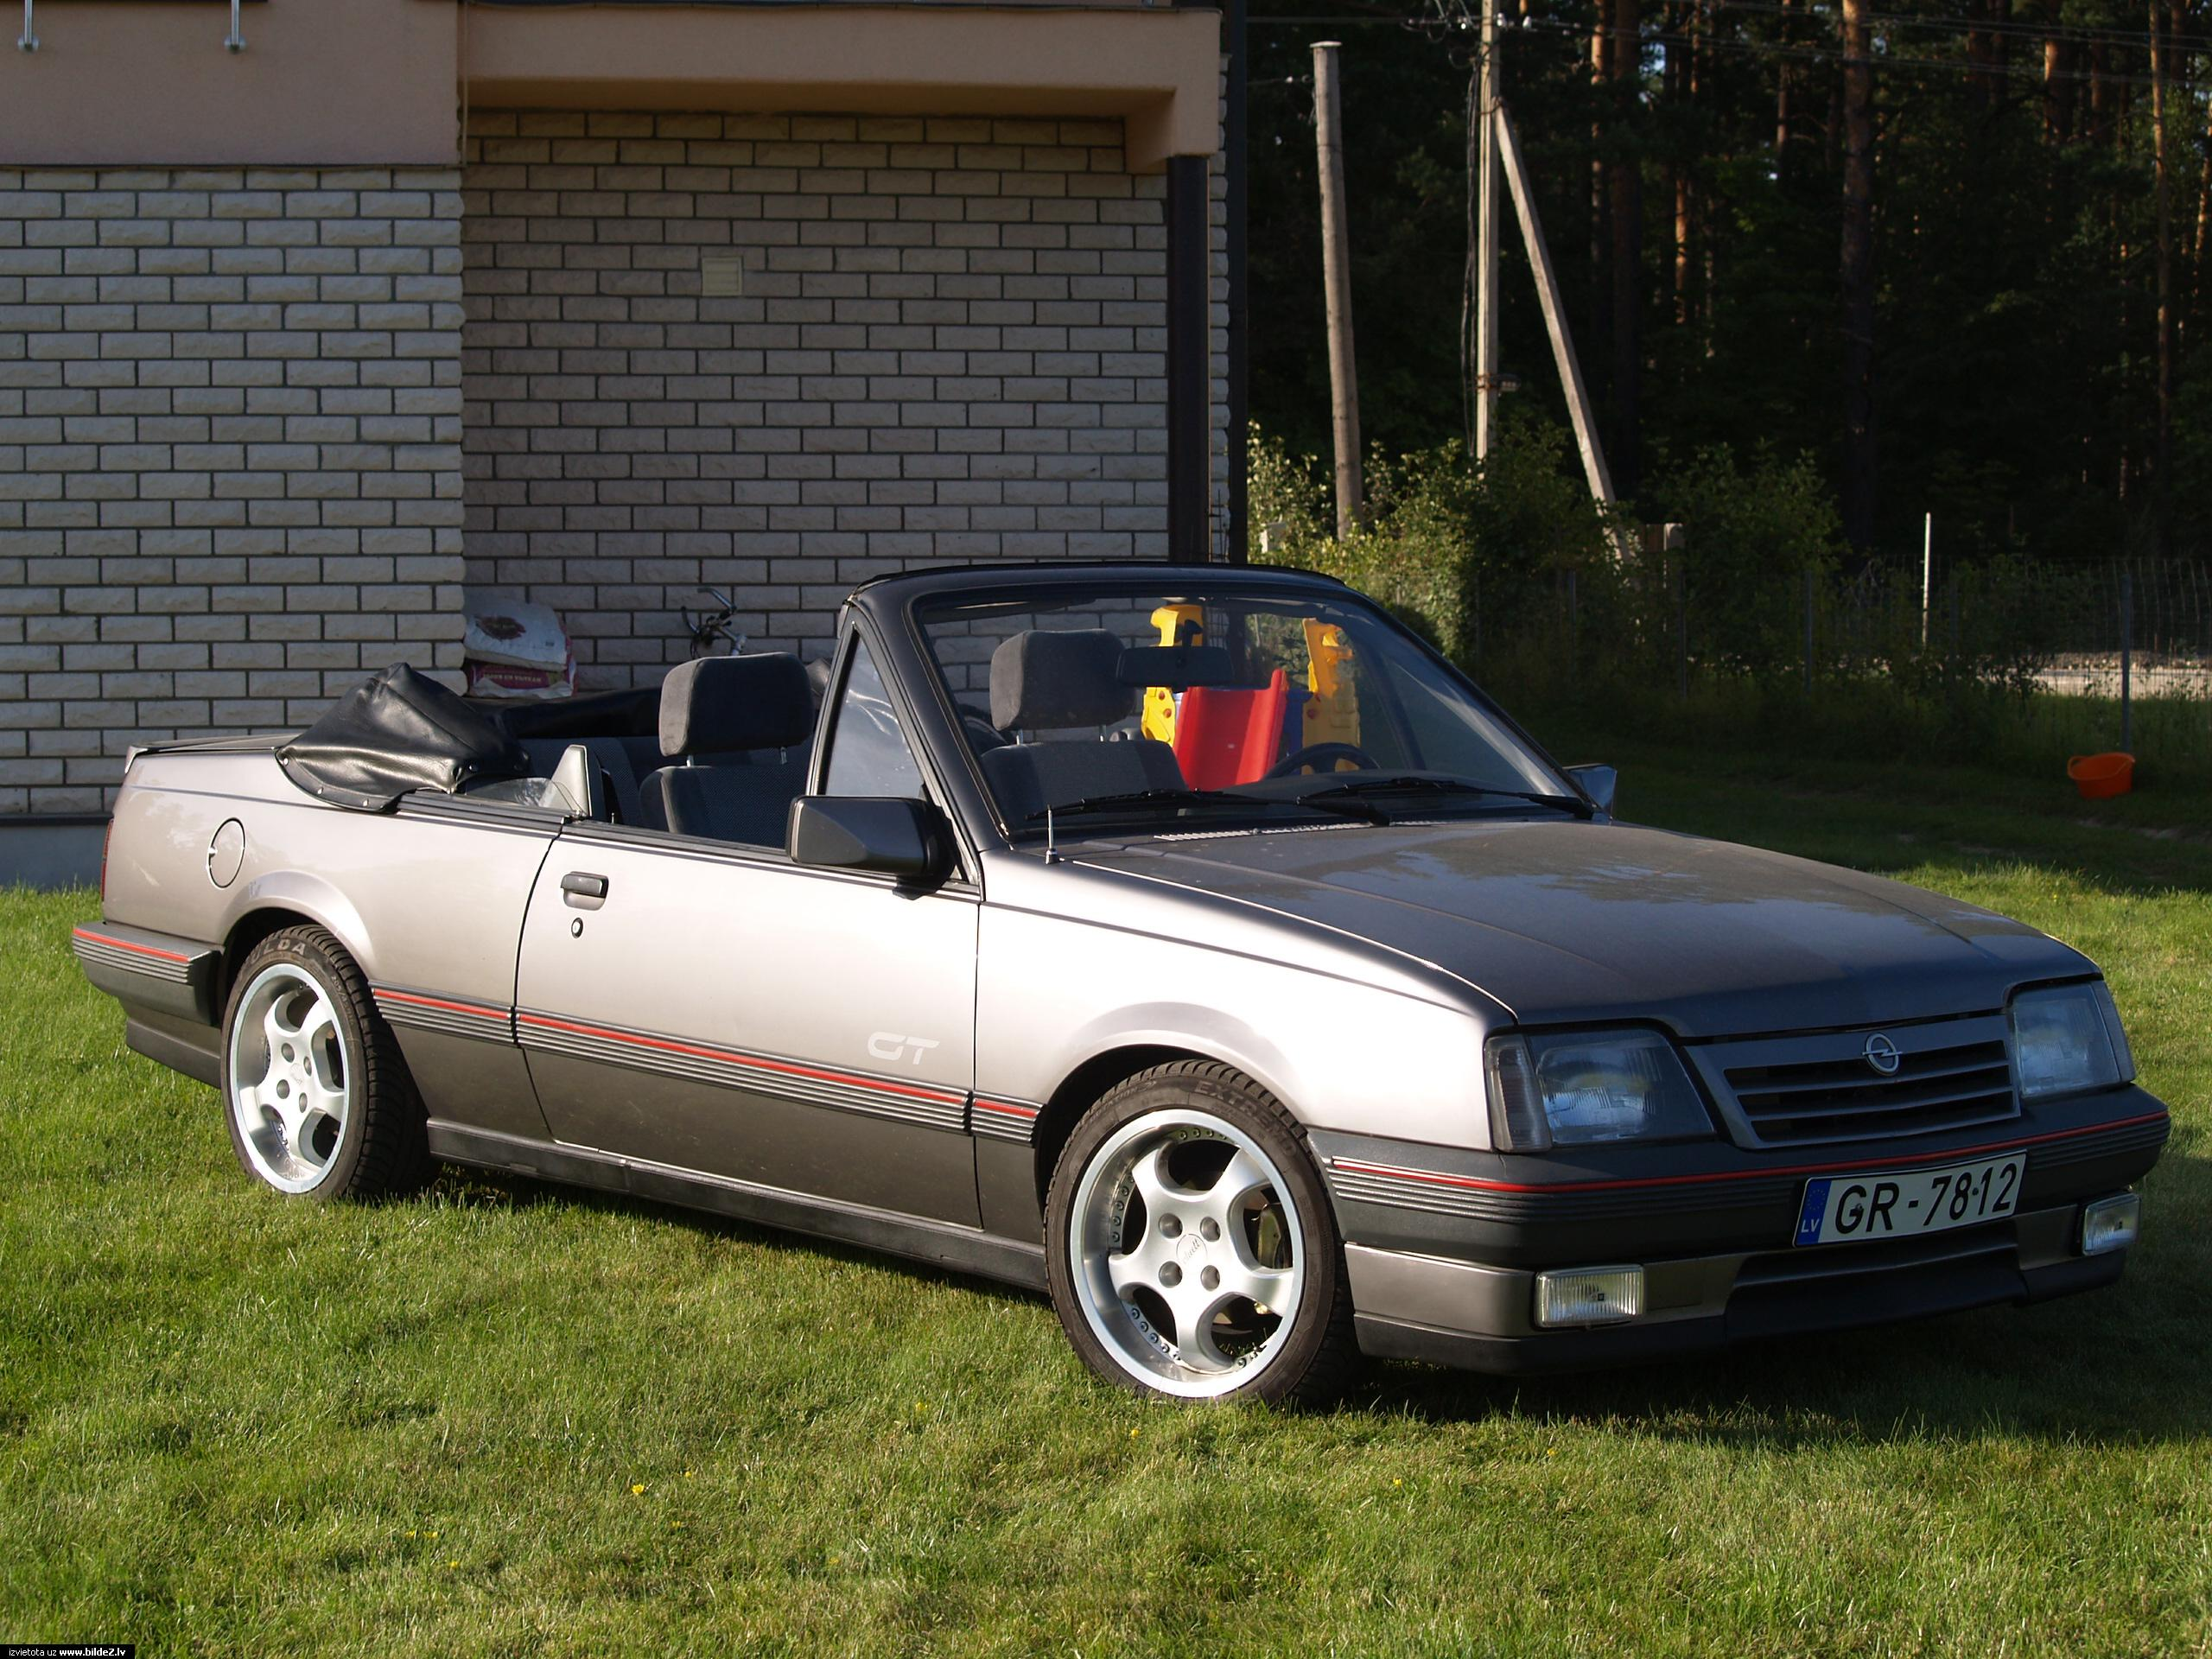 1057 1986 Toyota Mr2 also Voiture collection furthermore 2001 Volkswagen Bora Pictures C16060 pi13528073 as well 2005 Volkswagen Jetta Reviews C5860 additionally Renault 9 87328. on 1986 volkswagen cabriolet